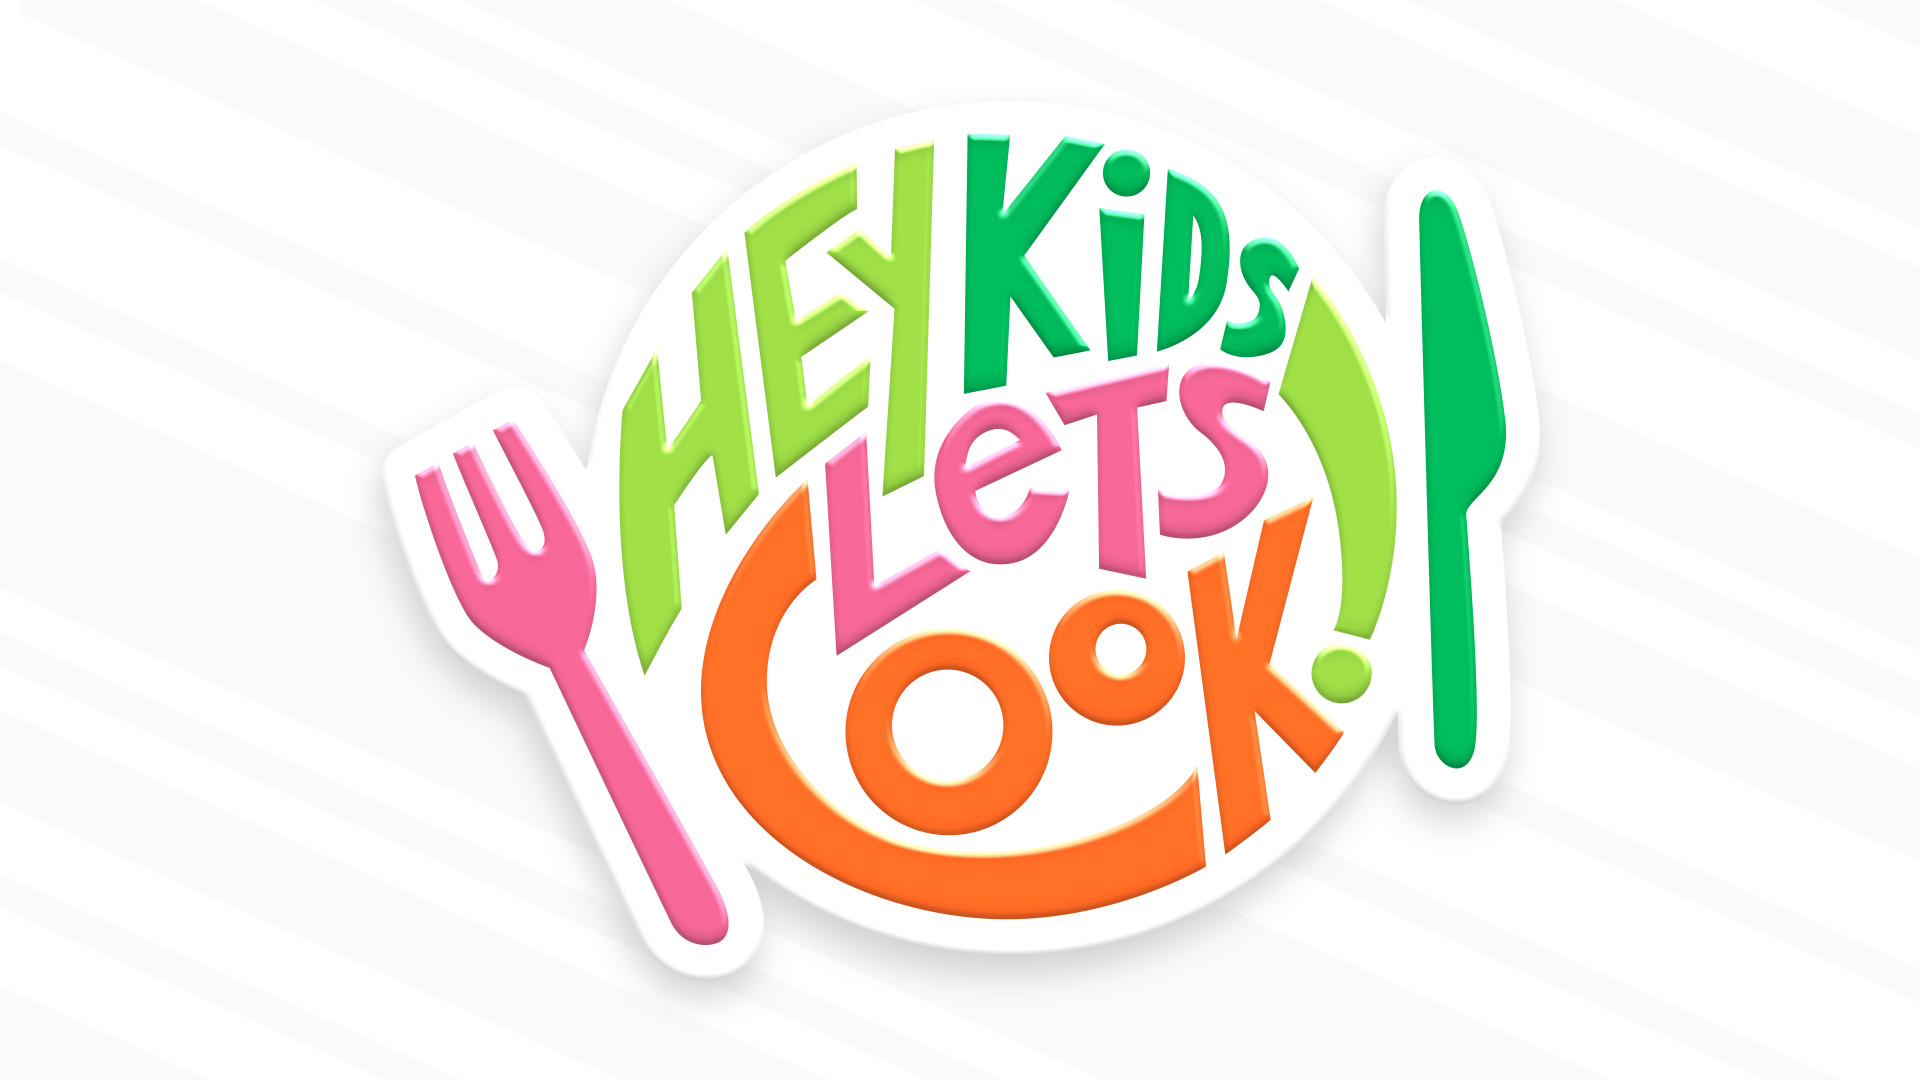 Hey Kids Lets Cook pitch deck